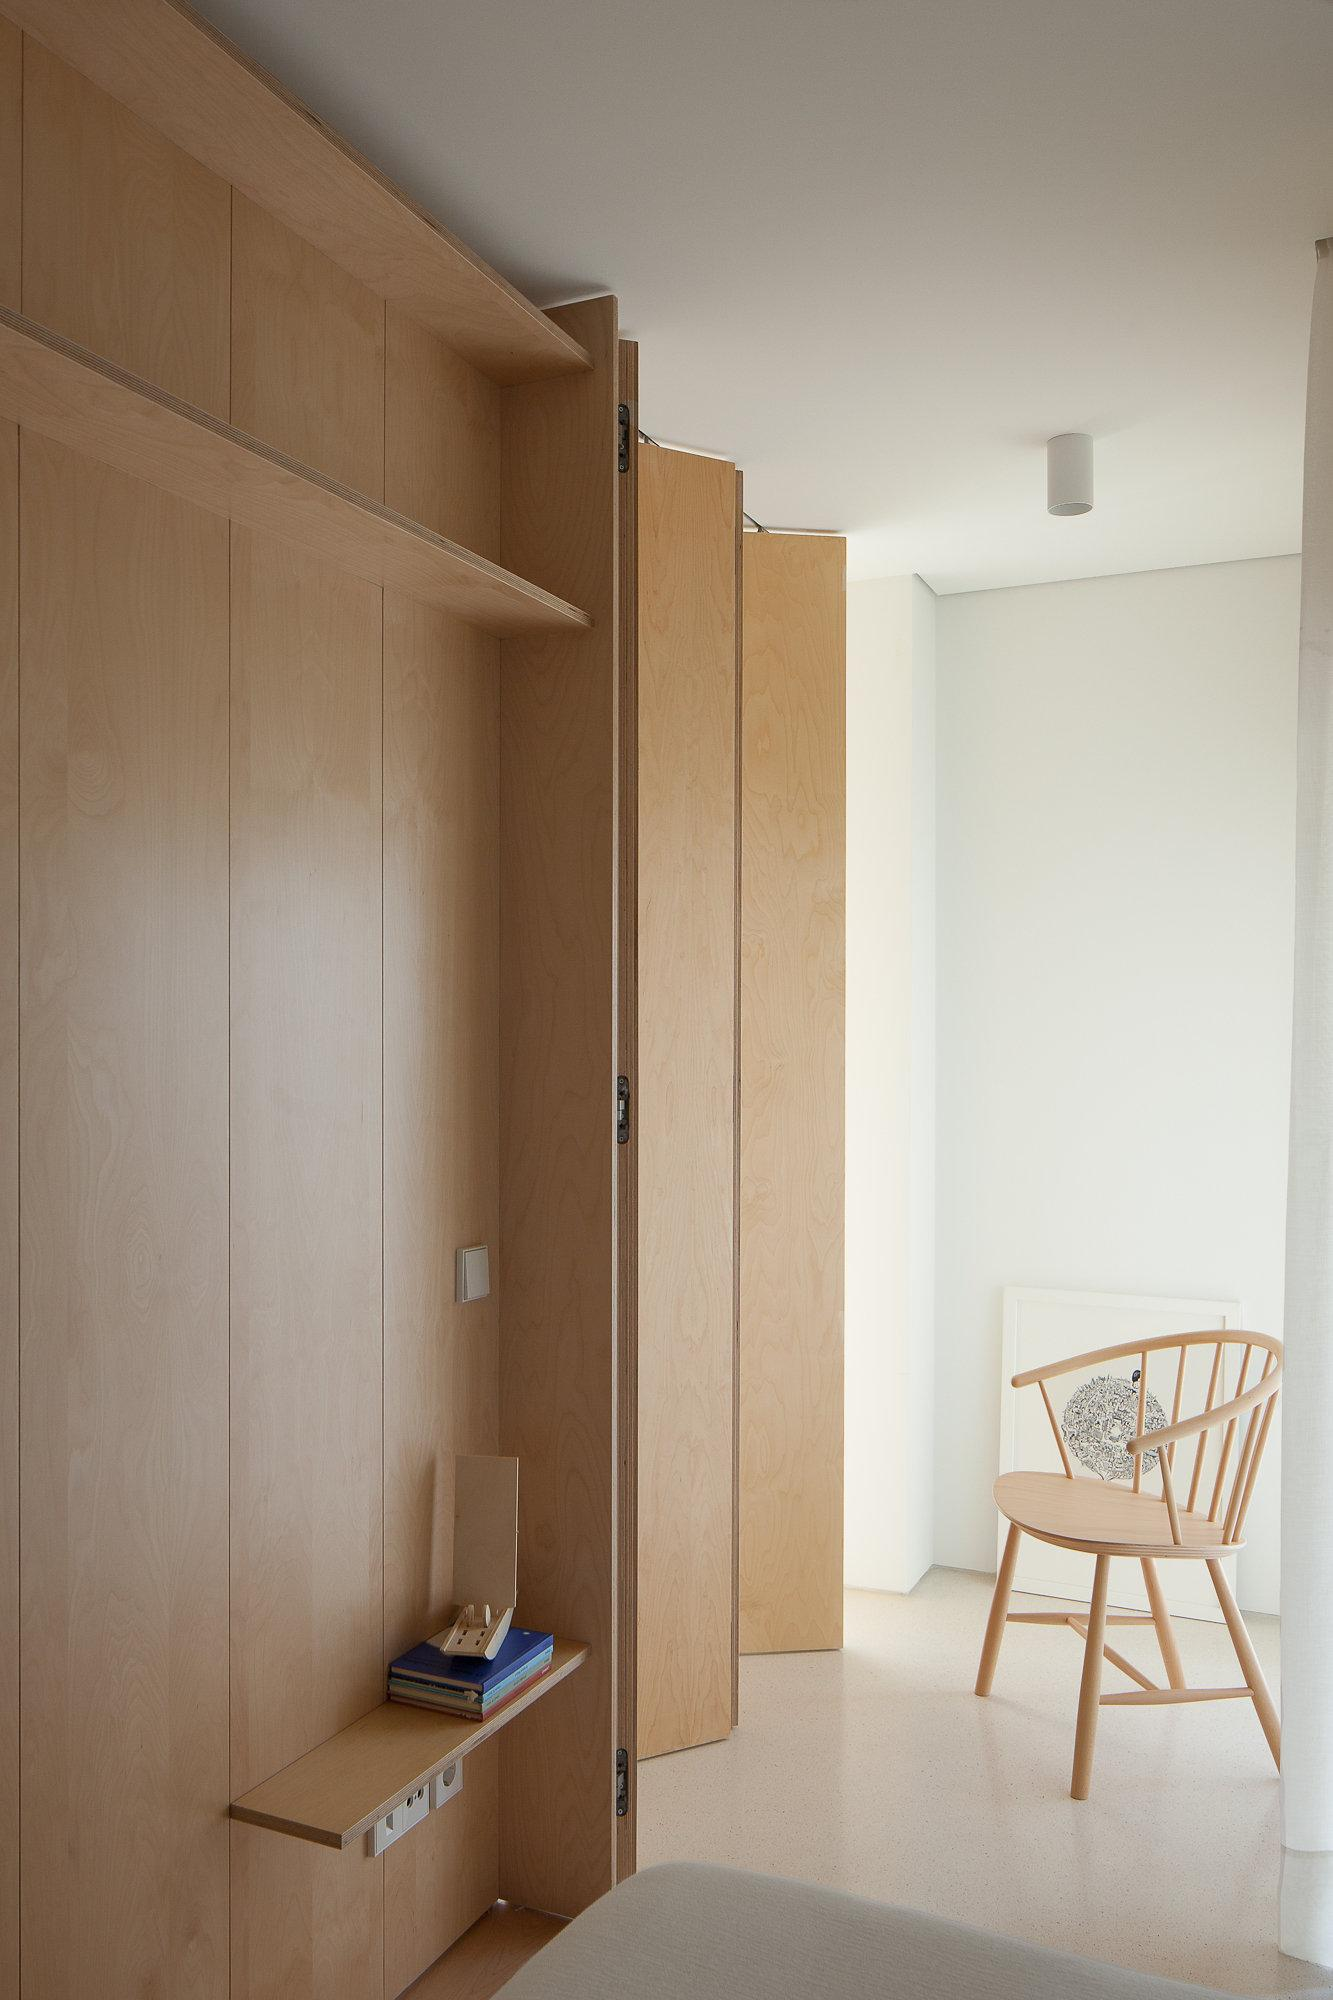 Door Solutions For Tight Spaces Good Design Ideas For